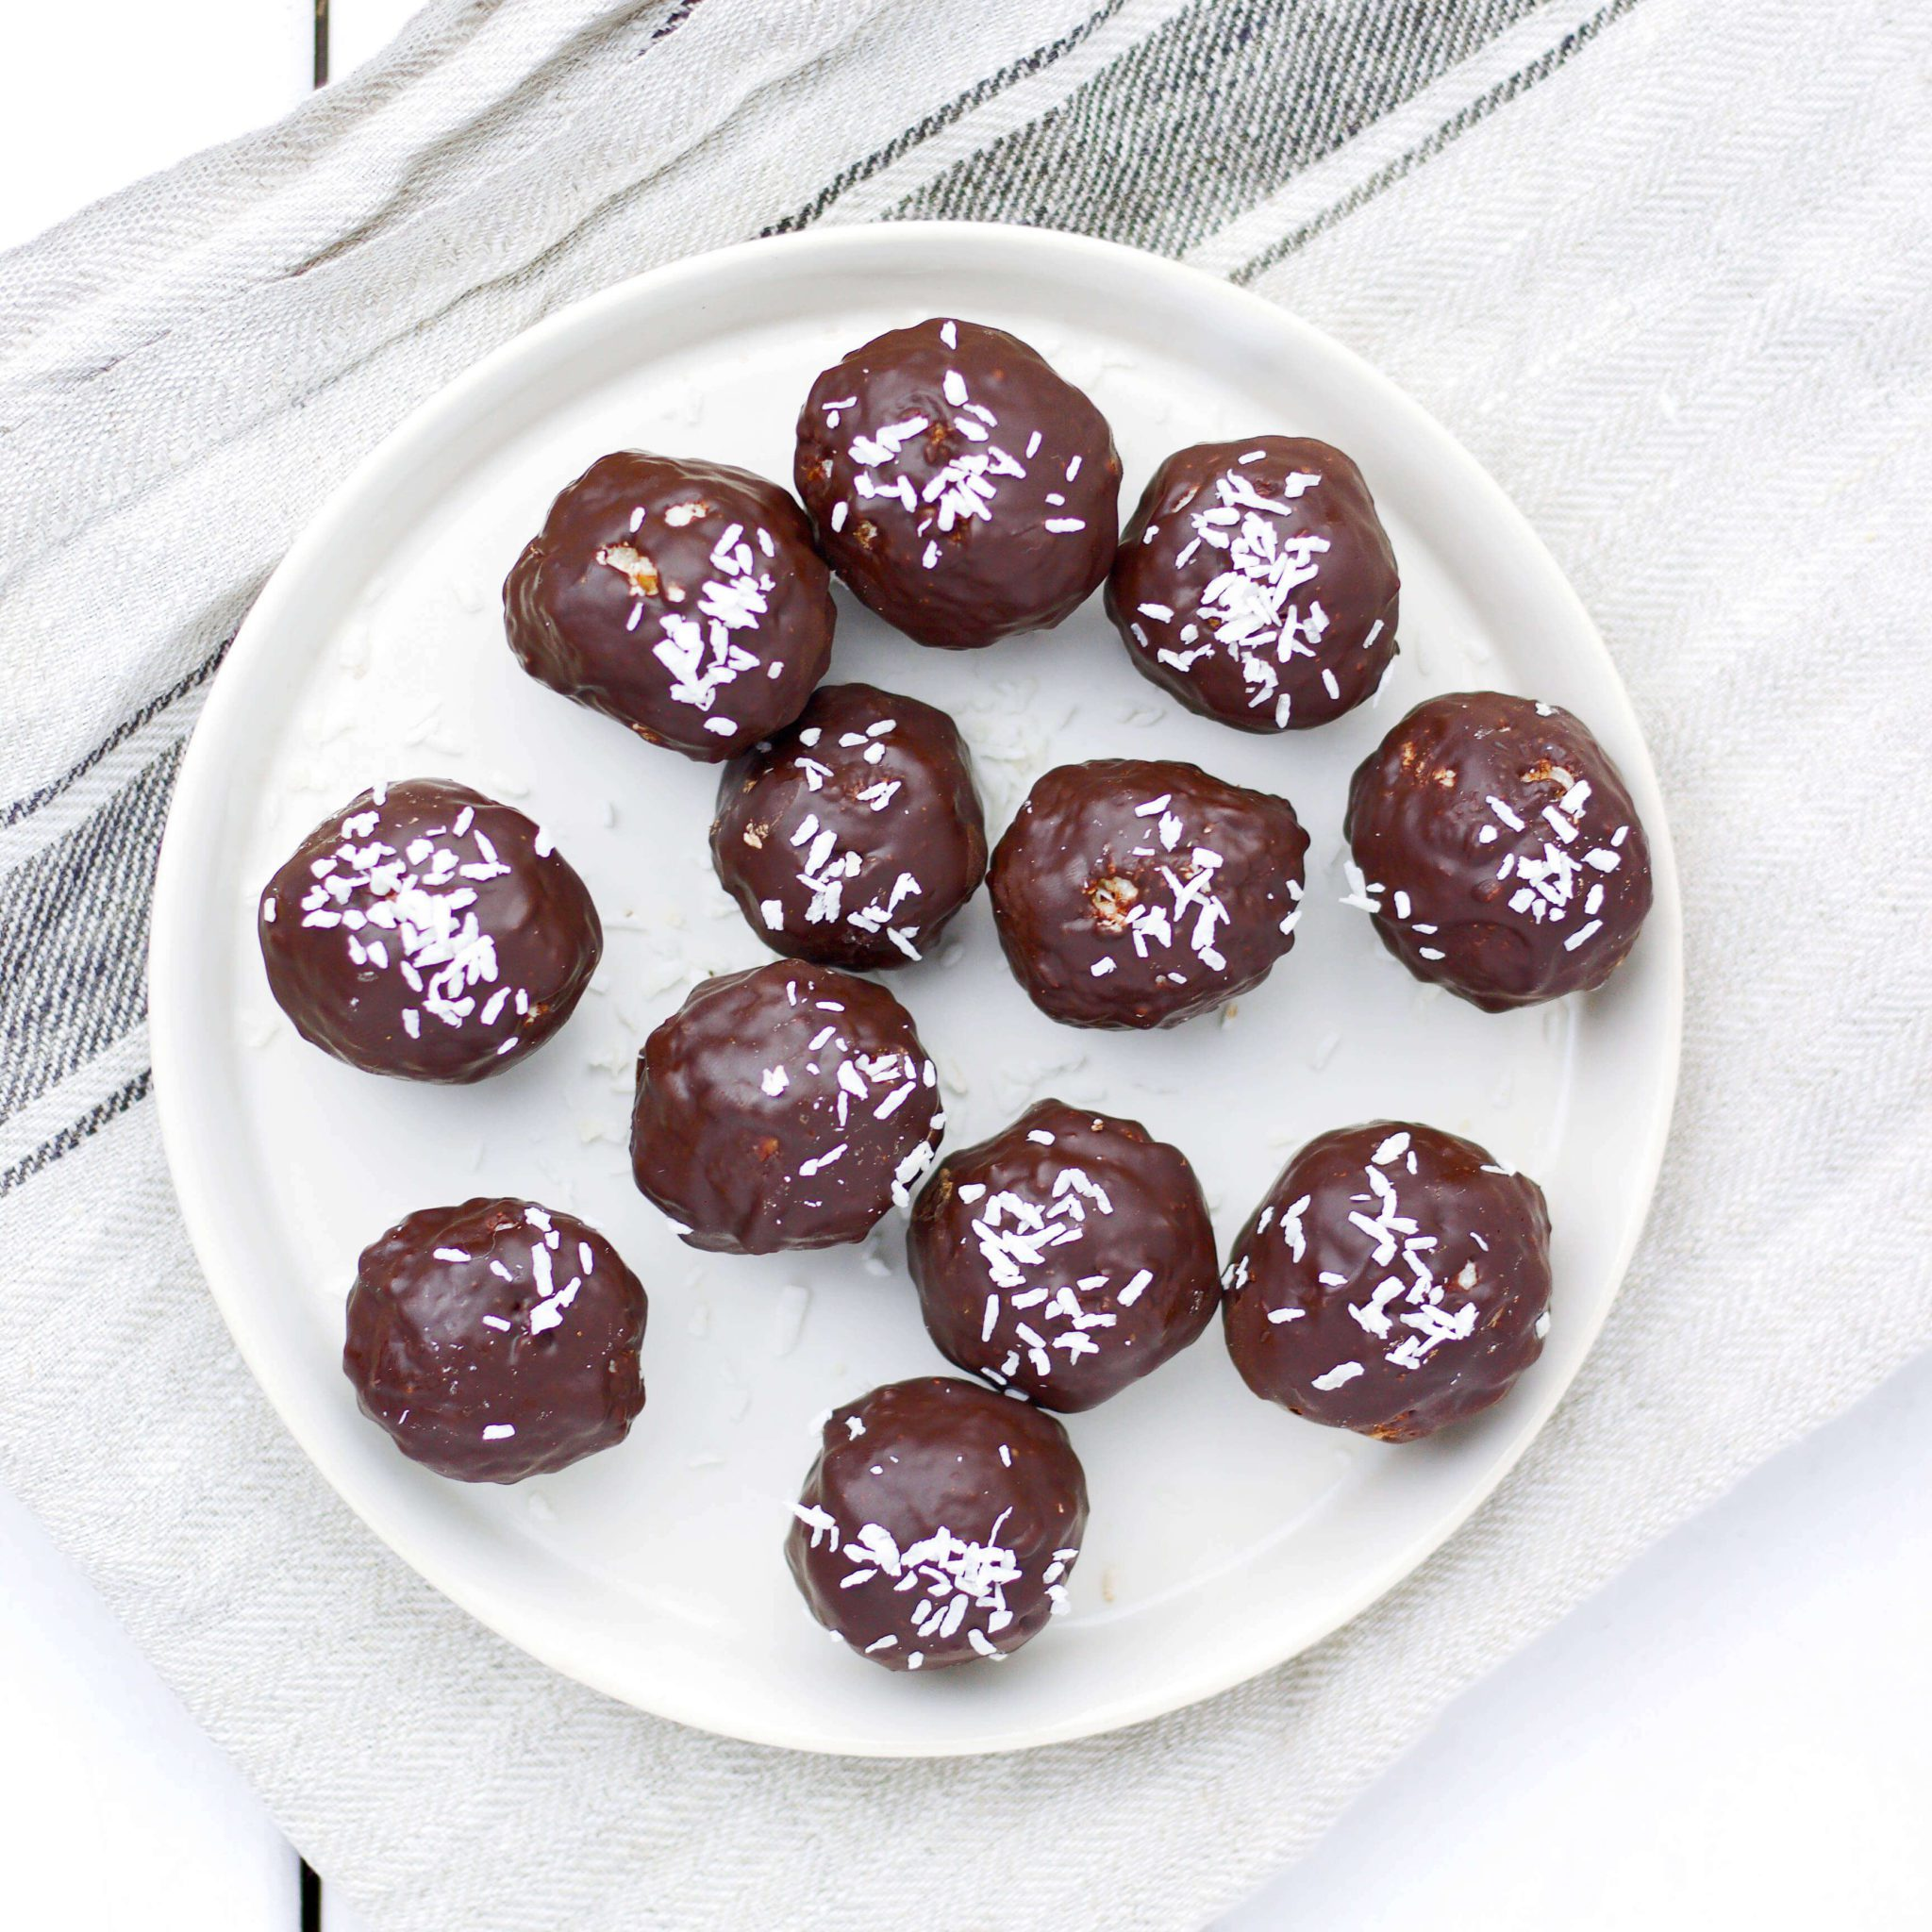 Dark chocolate coconut & almonds balls (VeGaN)